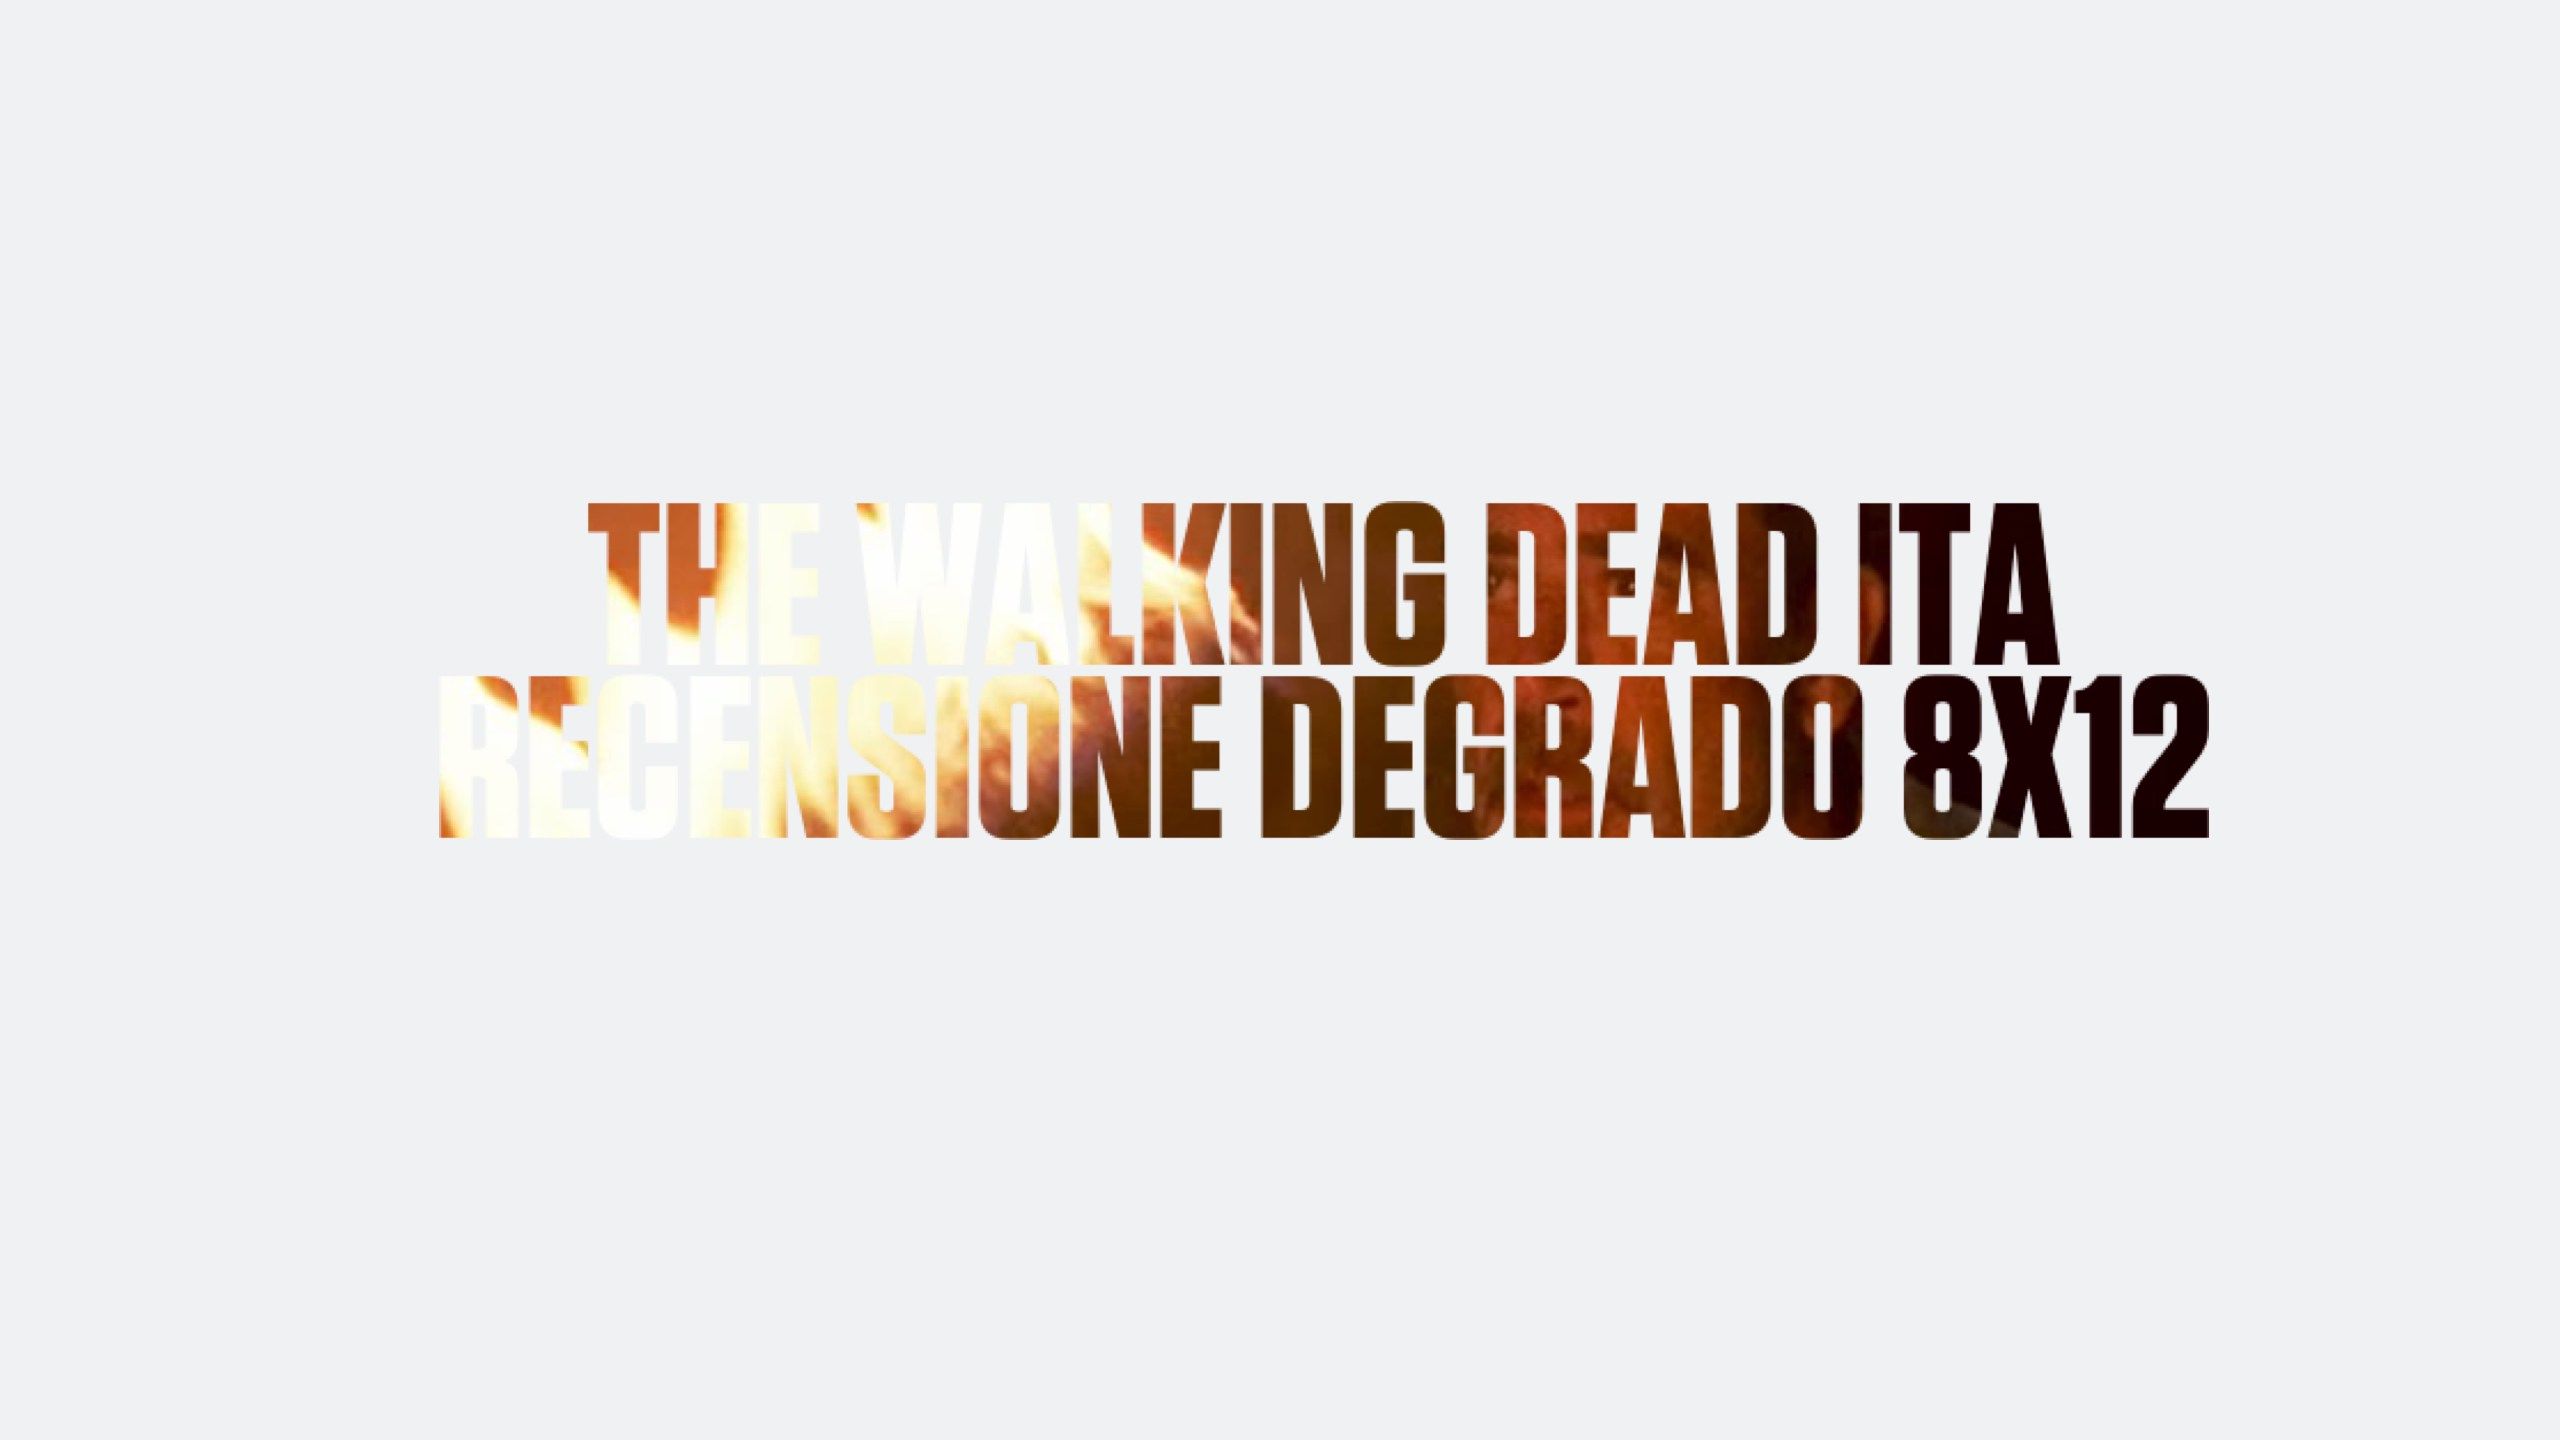 Recensione Degrado The Walking Dead 8×12